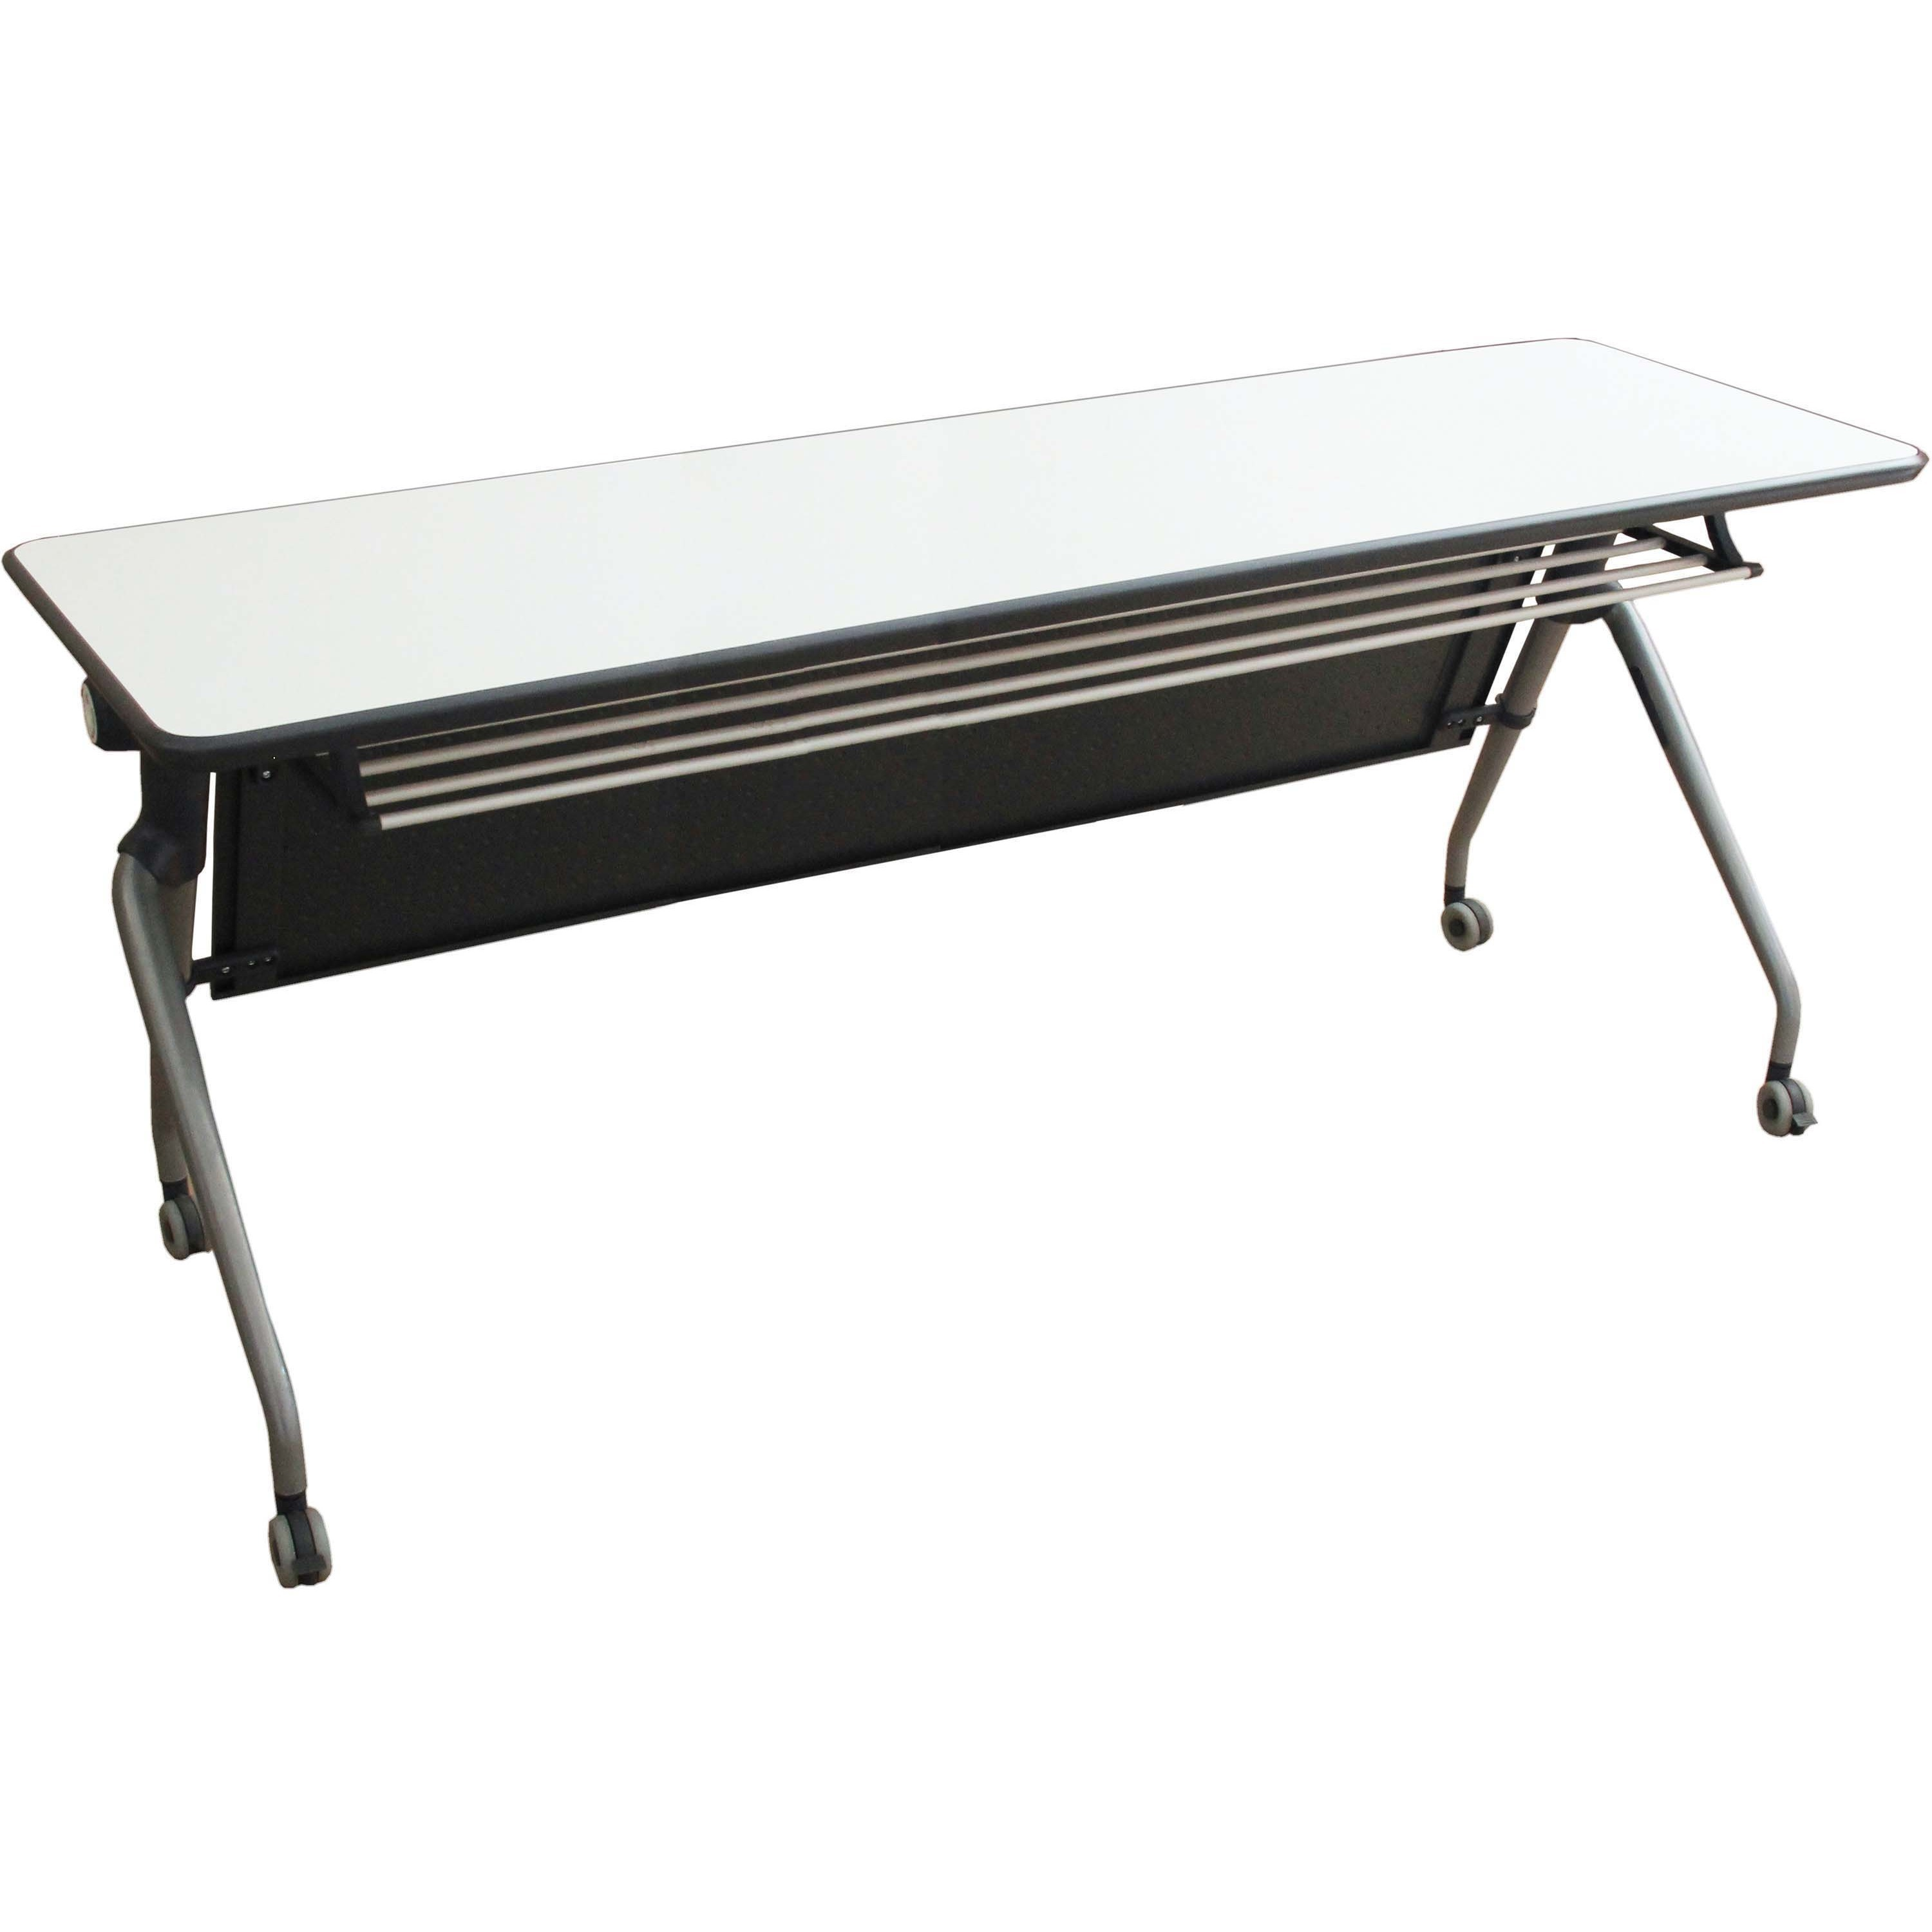 ae furniture training ad techno product table office